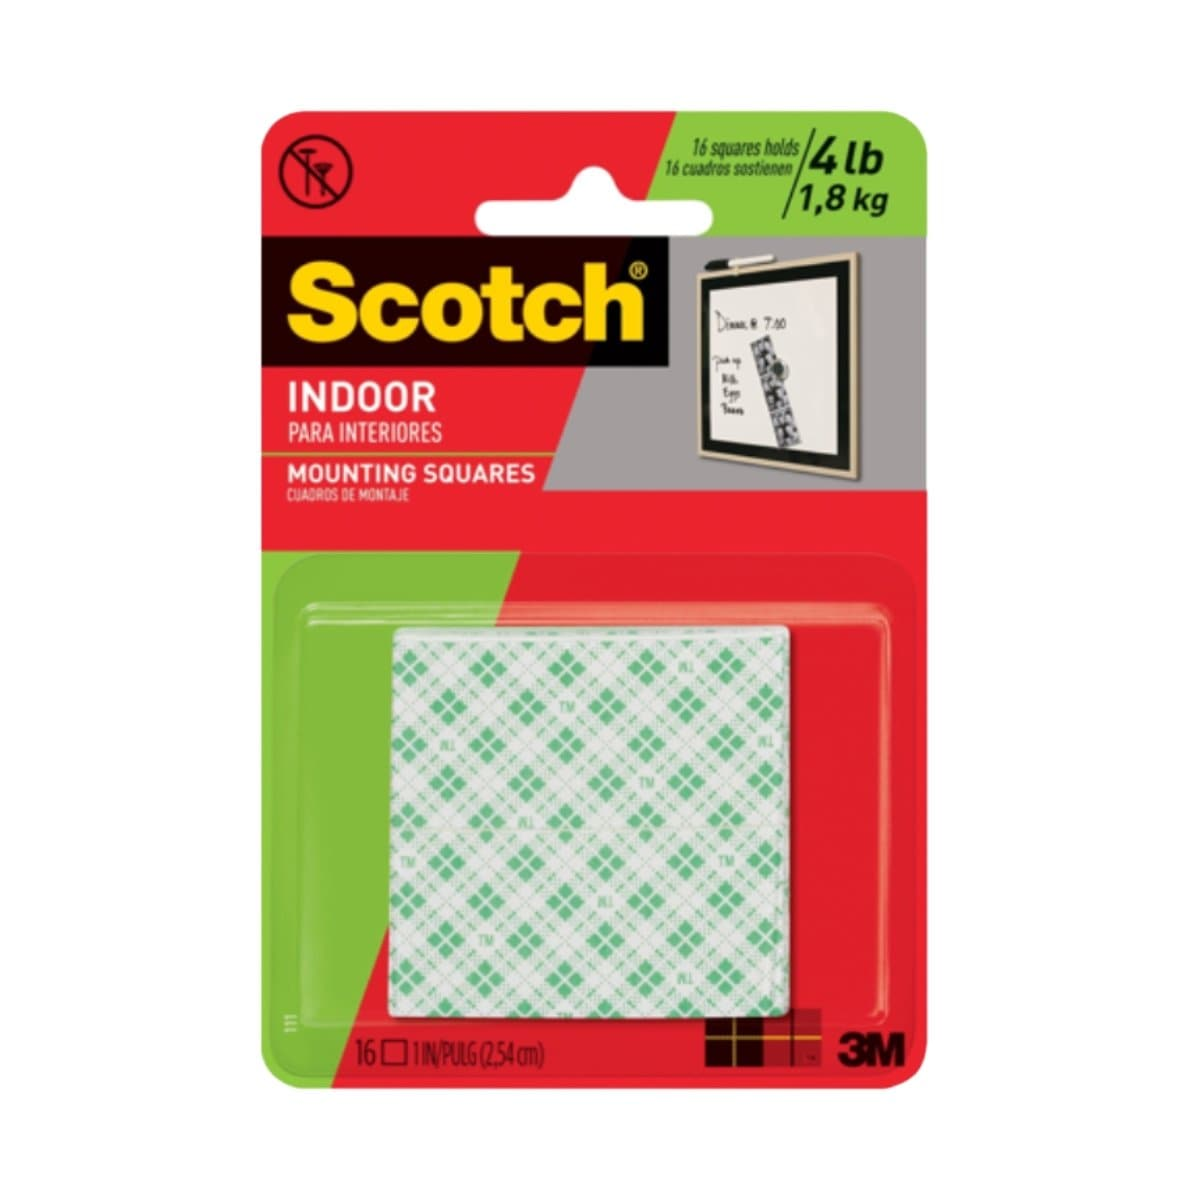 3M Scotch Mounting Squares 111, 1 x 1 inch, 16/pack